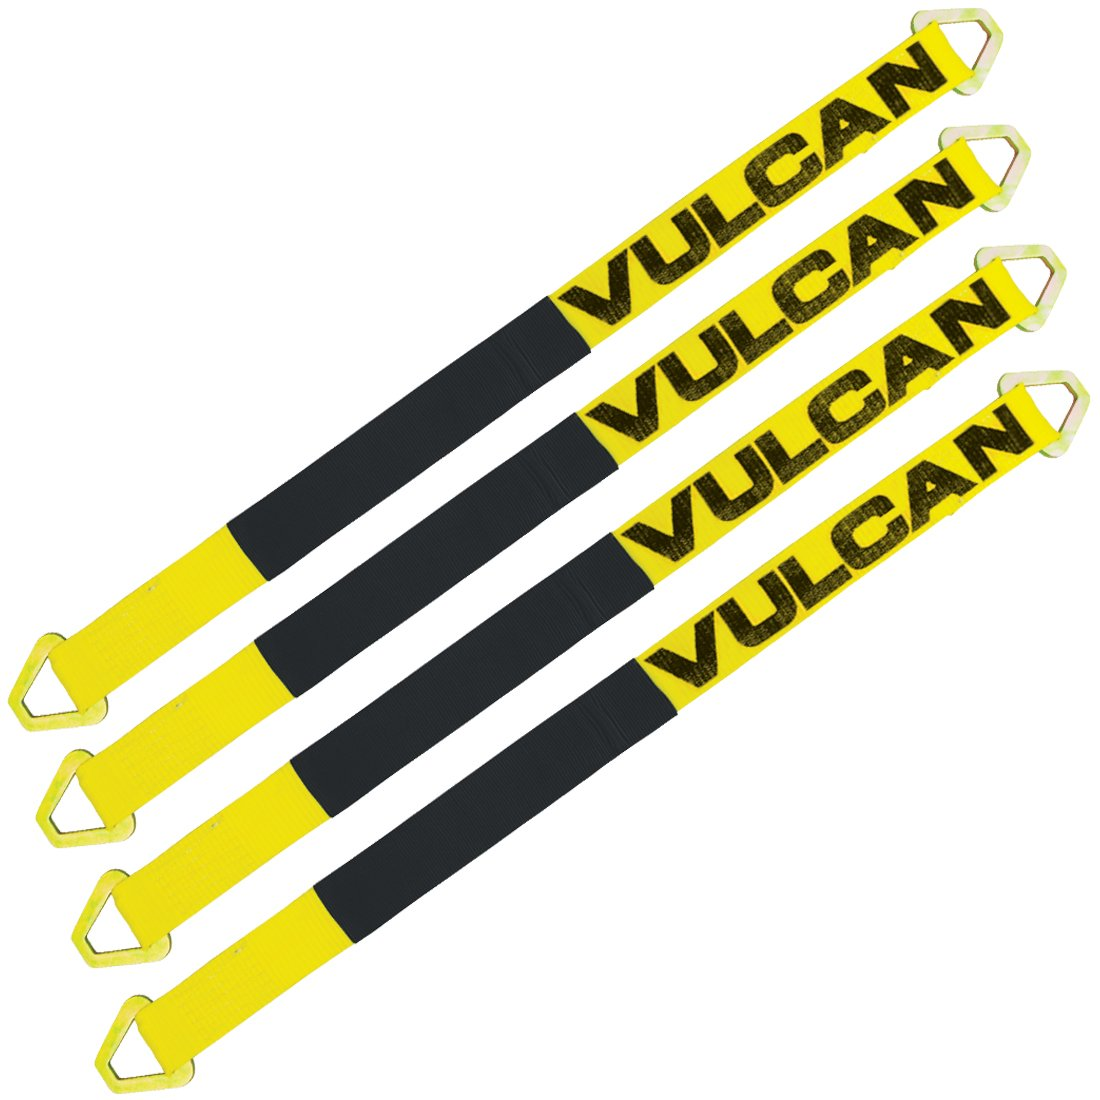 Vulcan Classic 1 Ply Flexible Auto Tie Down Axle Strap with Wear Pad 2'' x 36'' Pack of 4 Safe Working Load 3 300 lbs.